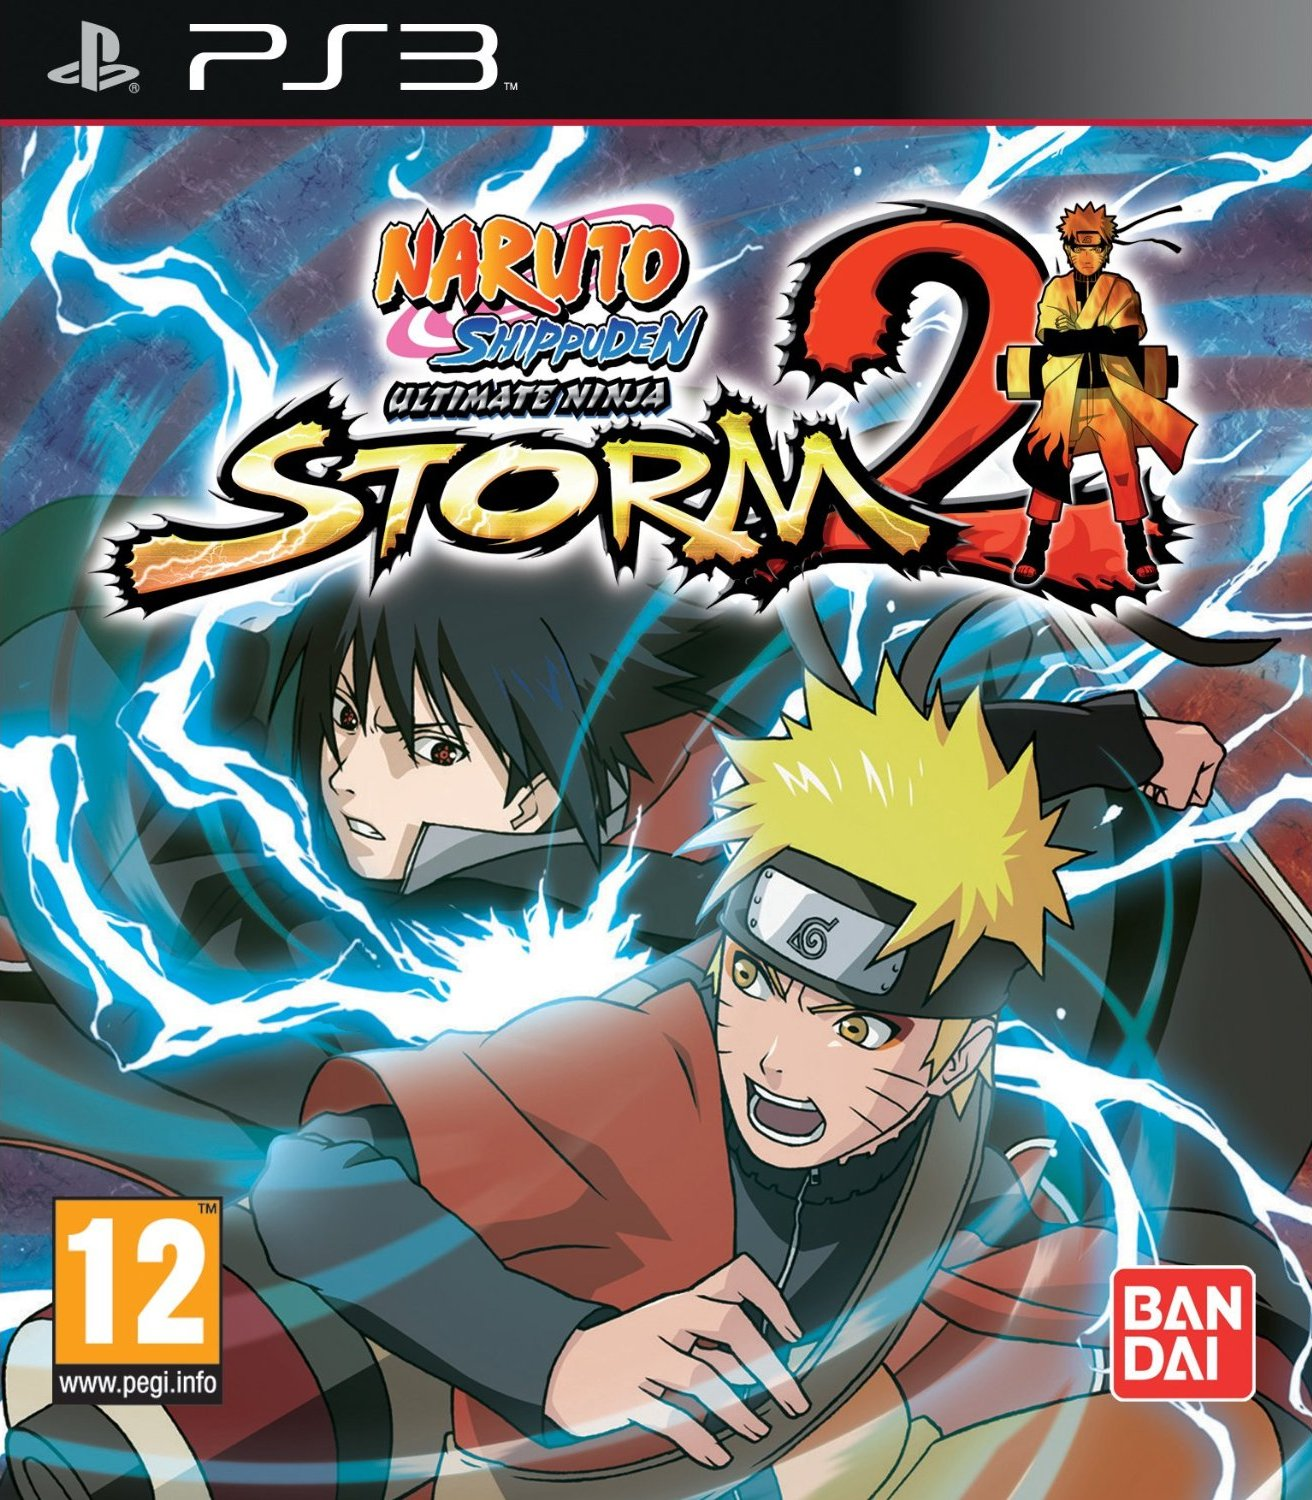 Naruto Shippden Ultimate Ninja Storm 2 Narutopedia Make Origami Online Diagrams